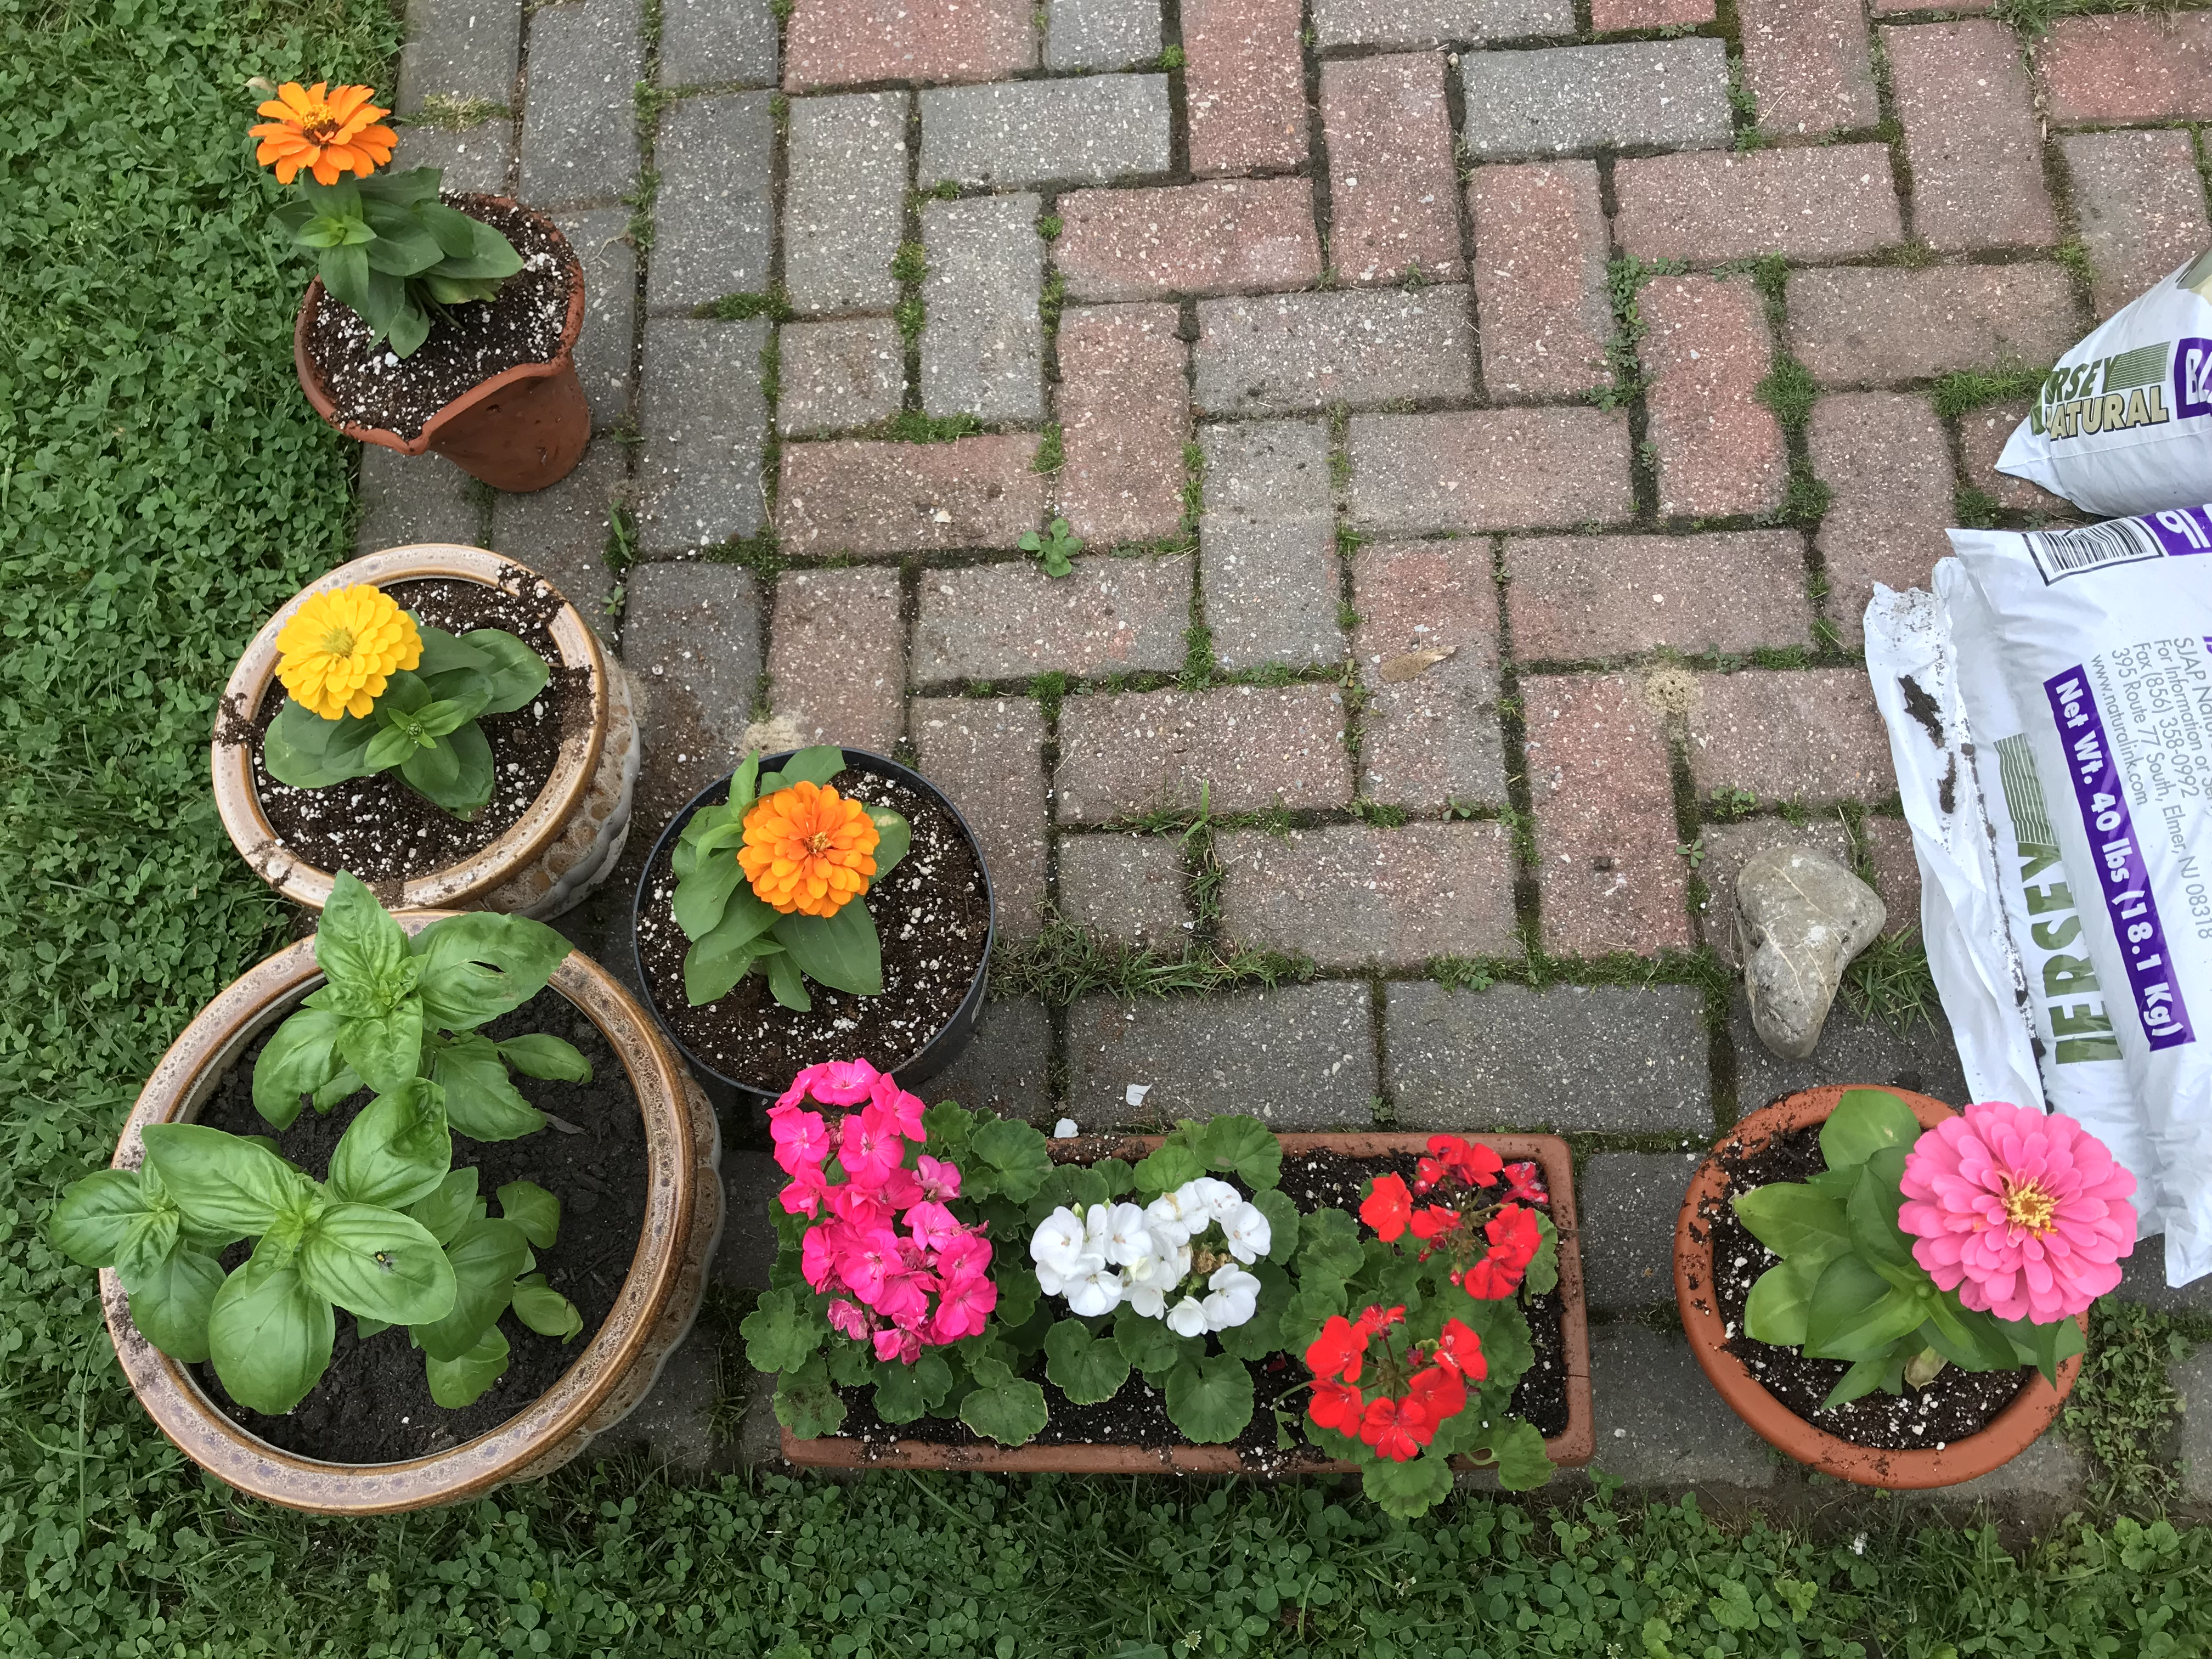 Zinnias, basil, and geraniums alongside a box full of vegetable plants that will make up a small summer garden - and bring to life the memory of a long-lost mother, too.